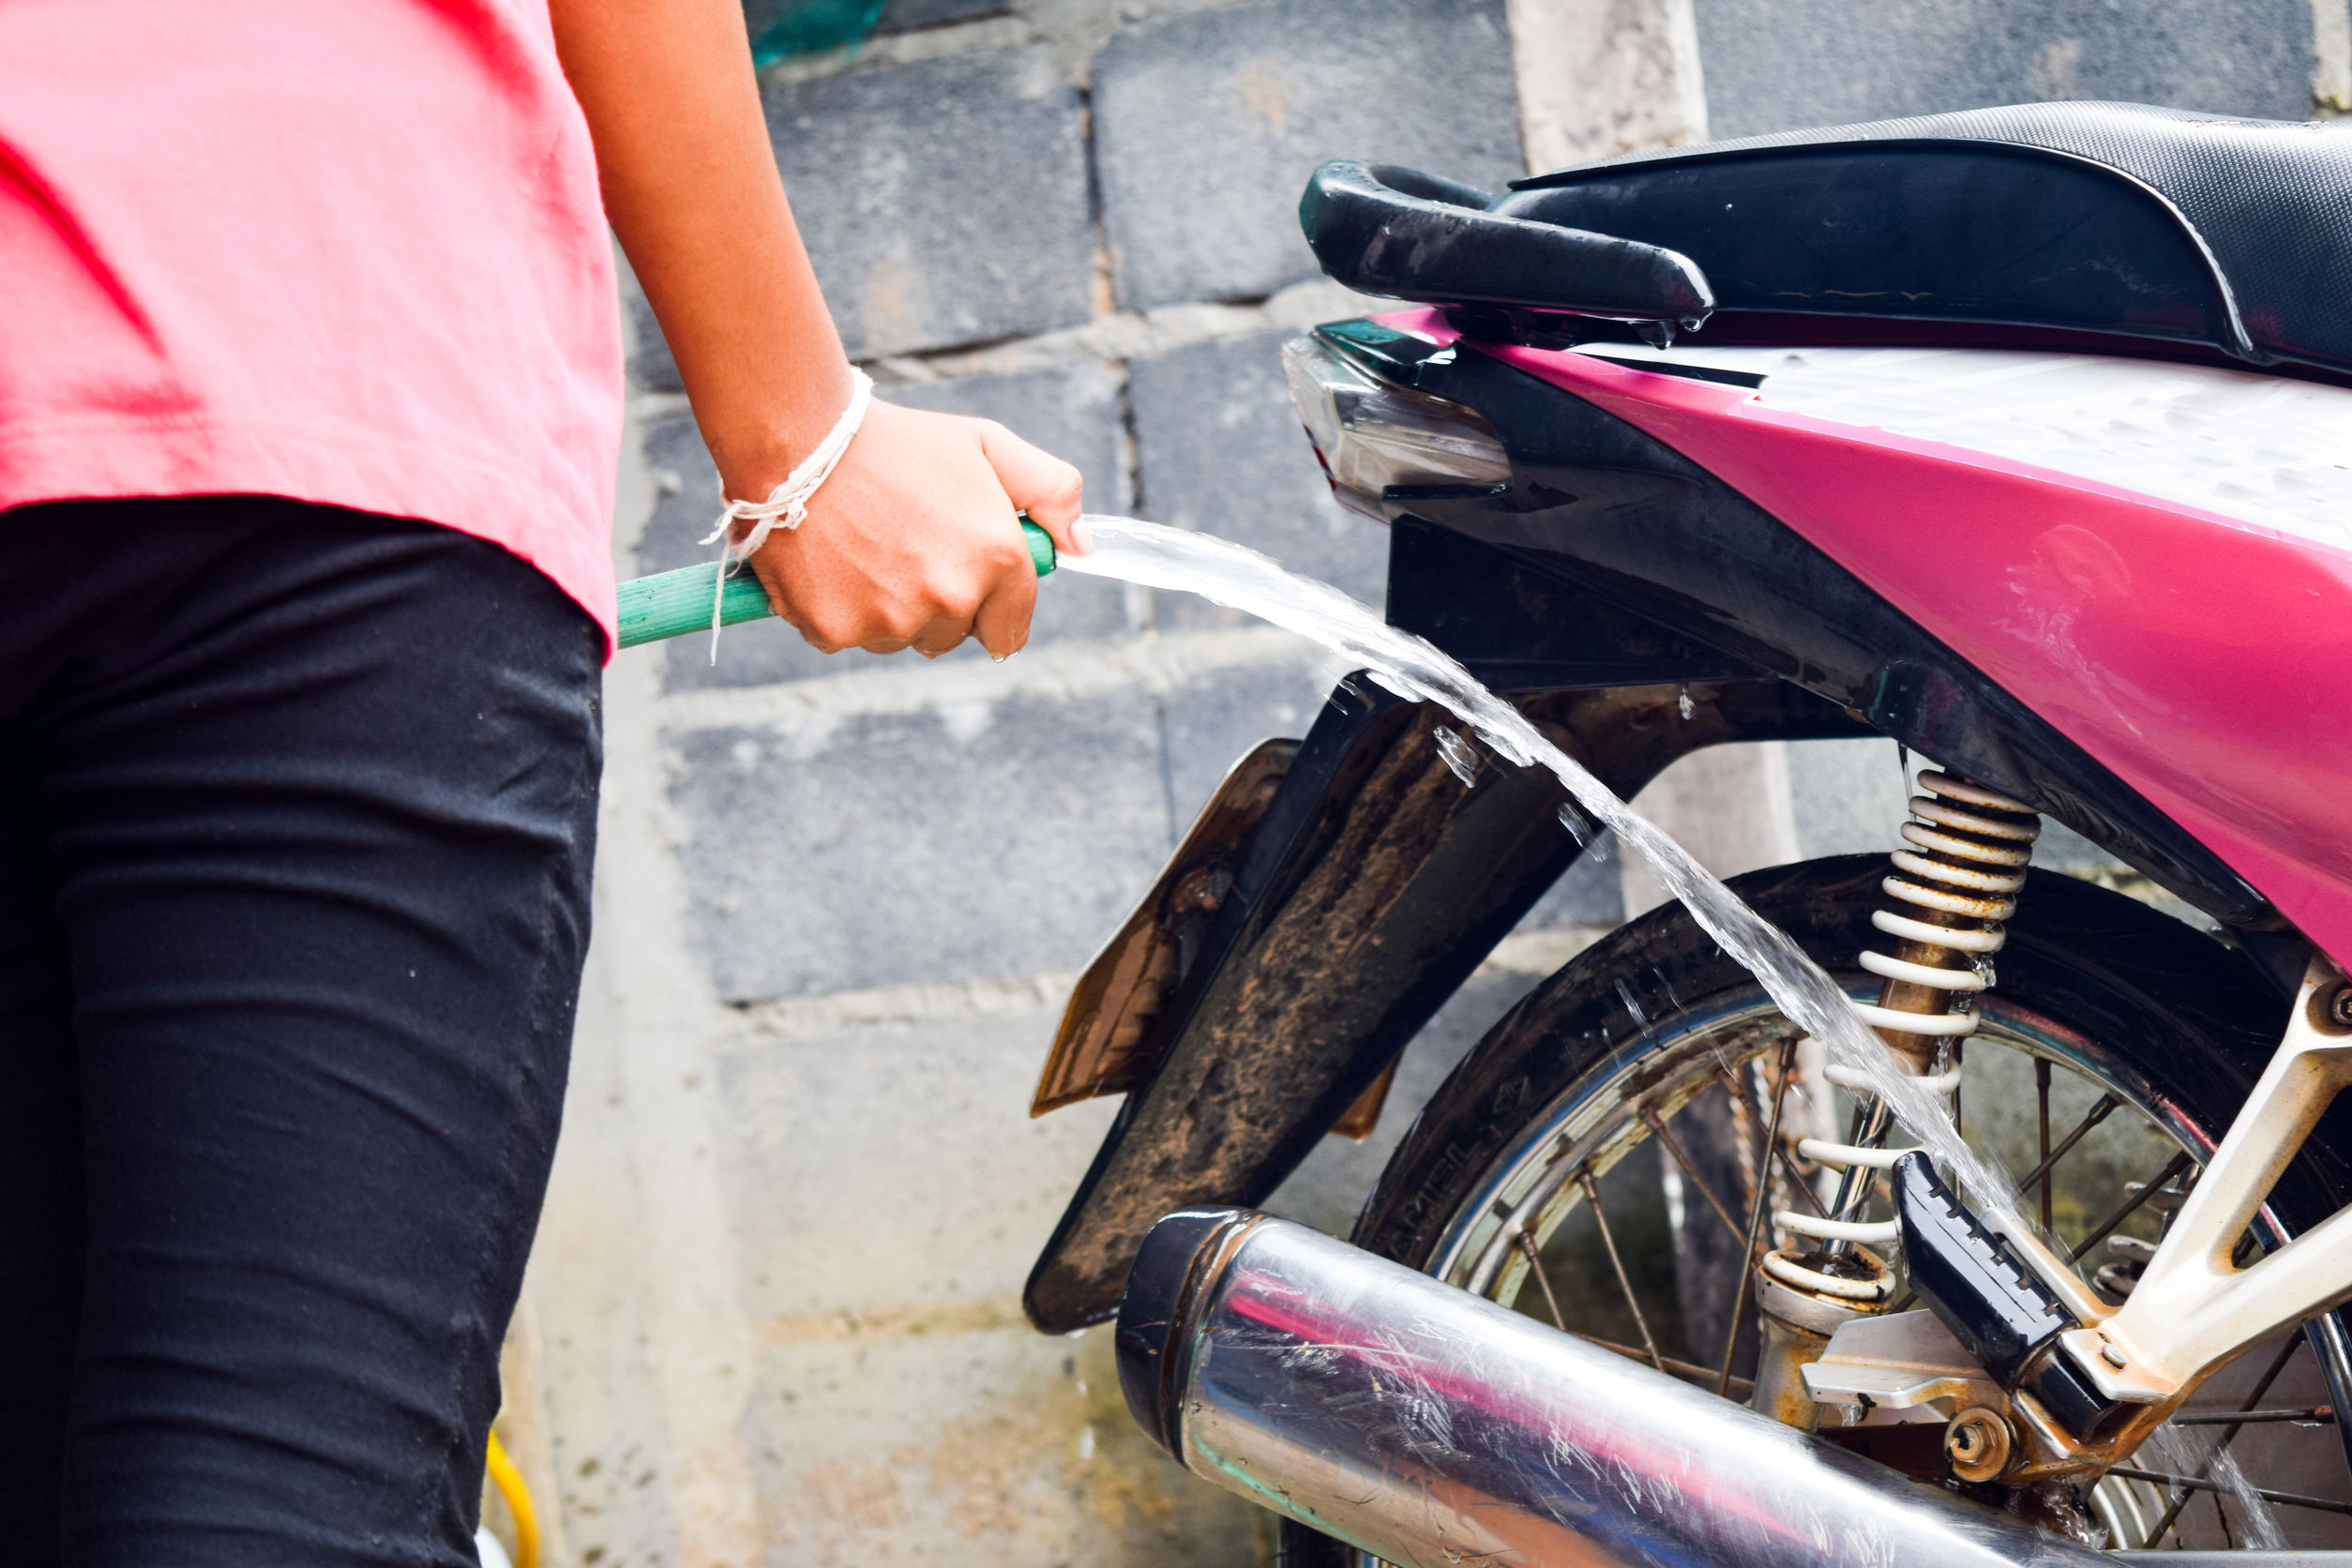 65137743 - girl cleaning and washing the pink motorcycle